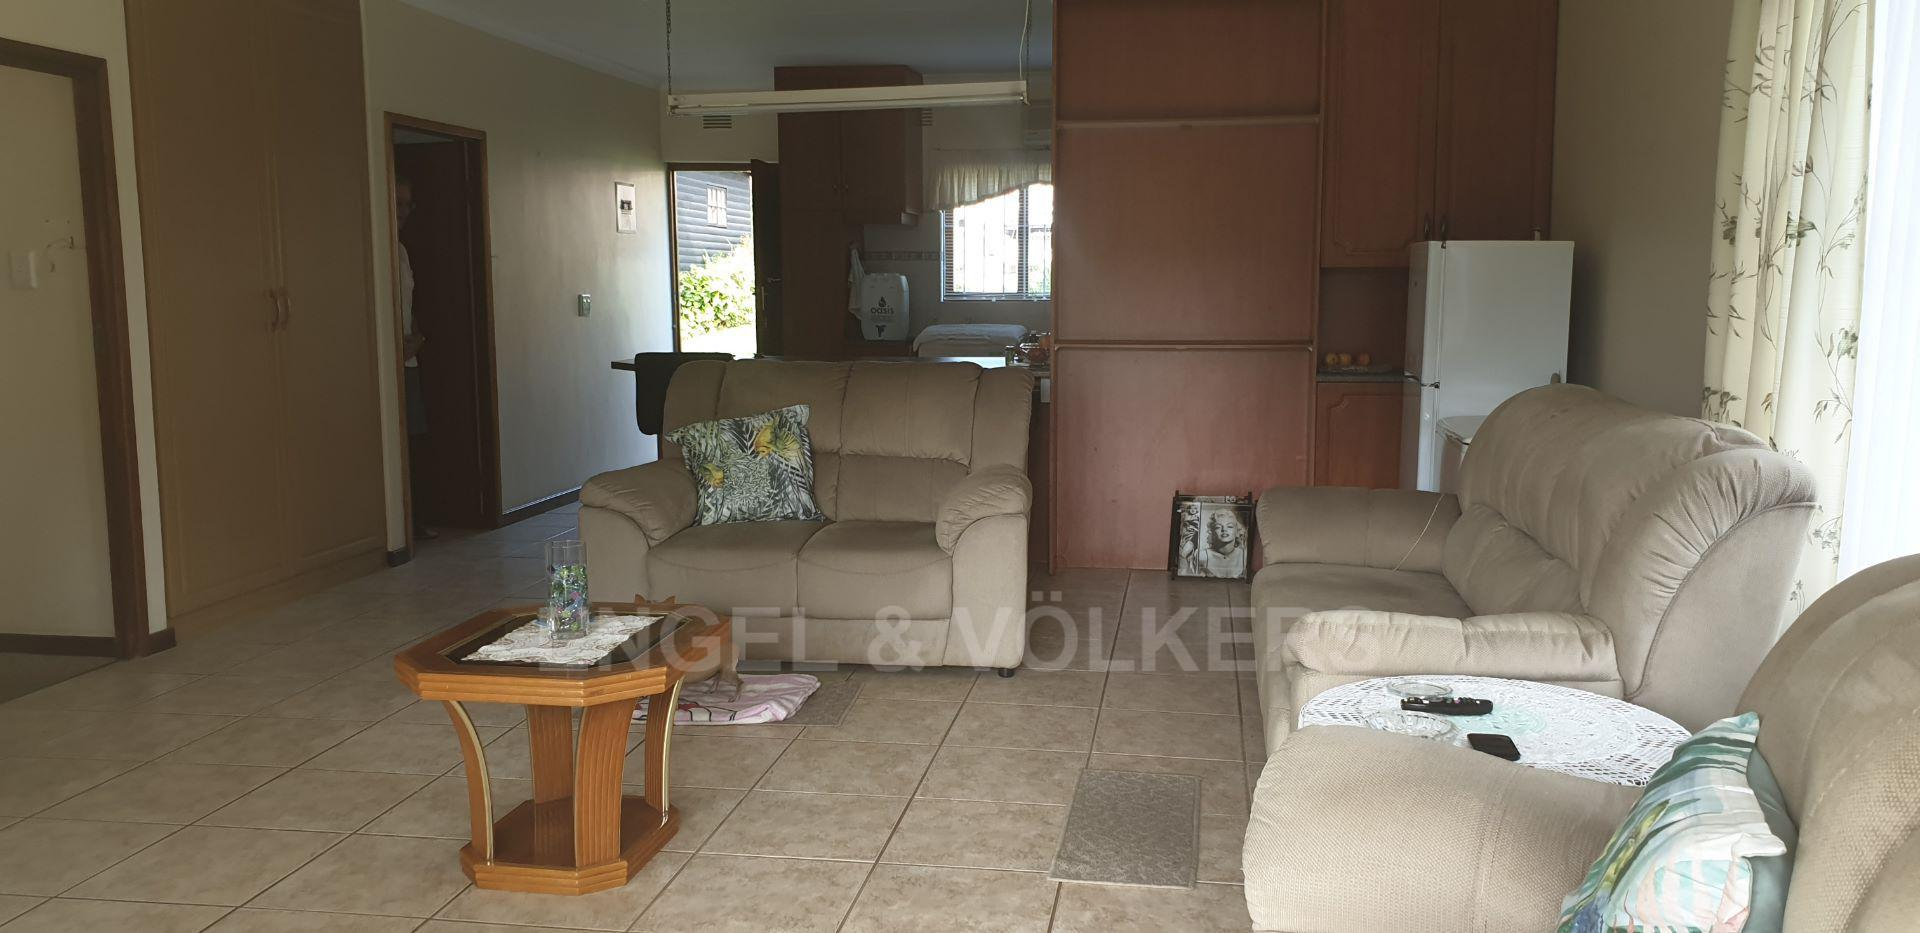 House in Uvongo - 014 - Flat - Living area 2.jpg